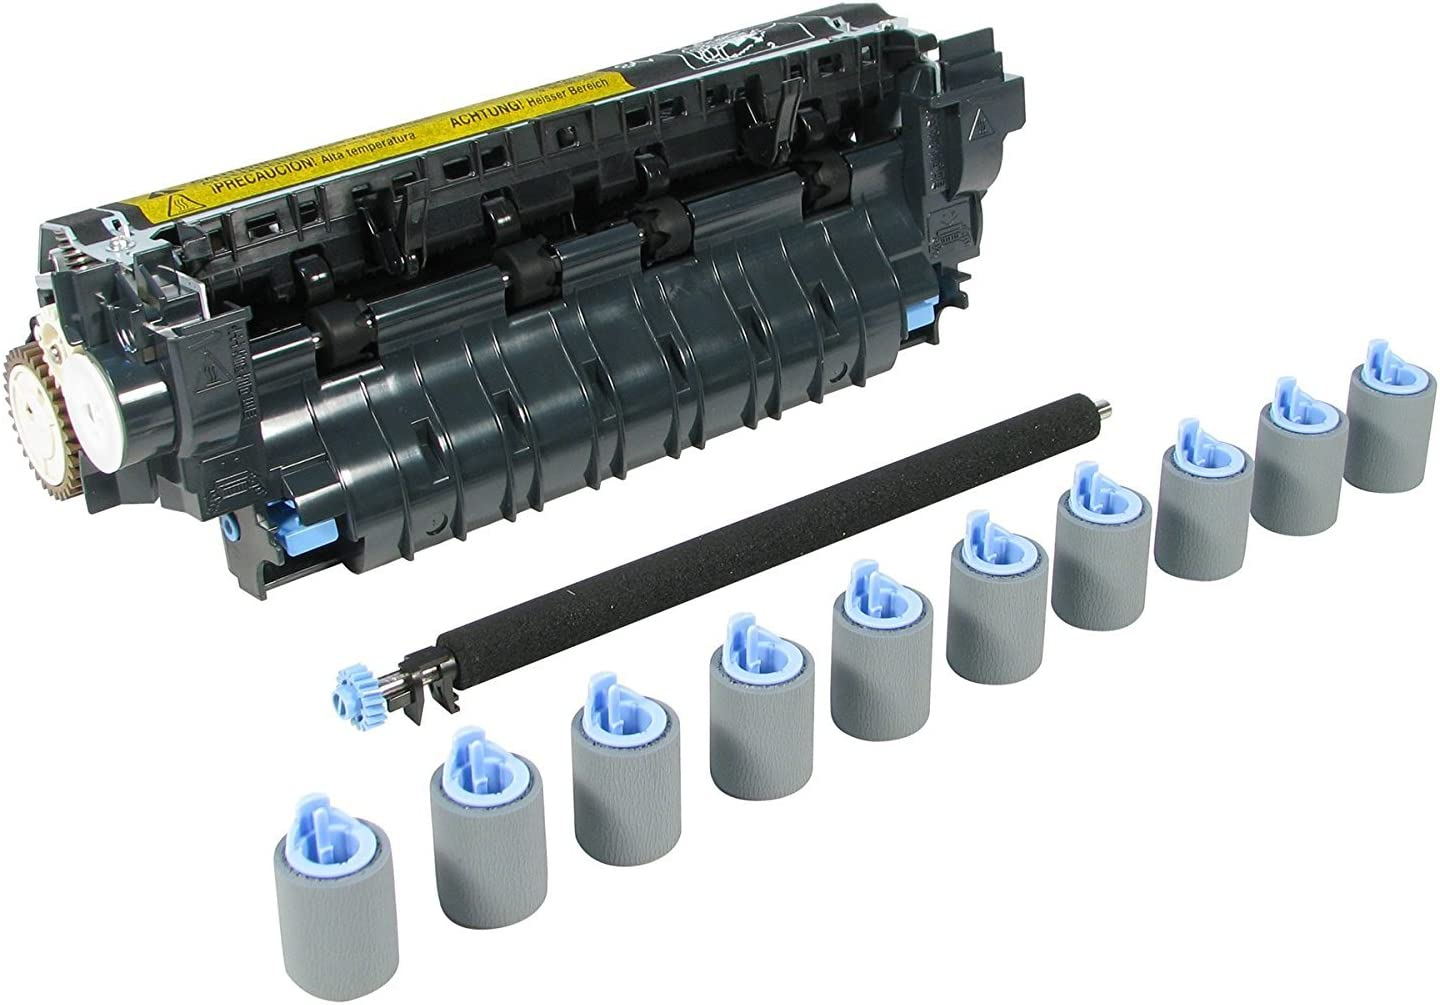 HP CB388A Maintenance Kit for P4015, P4515 LaserJet Printers: Office Products